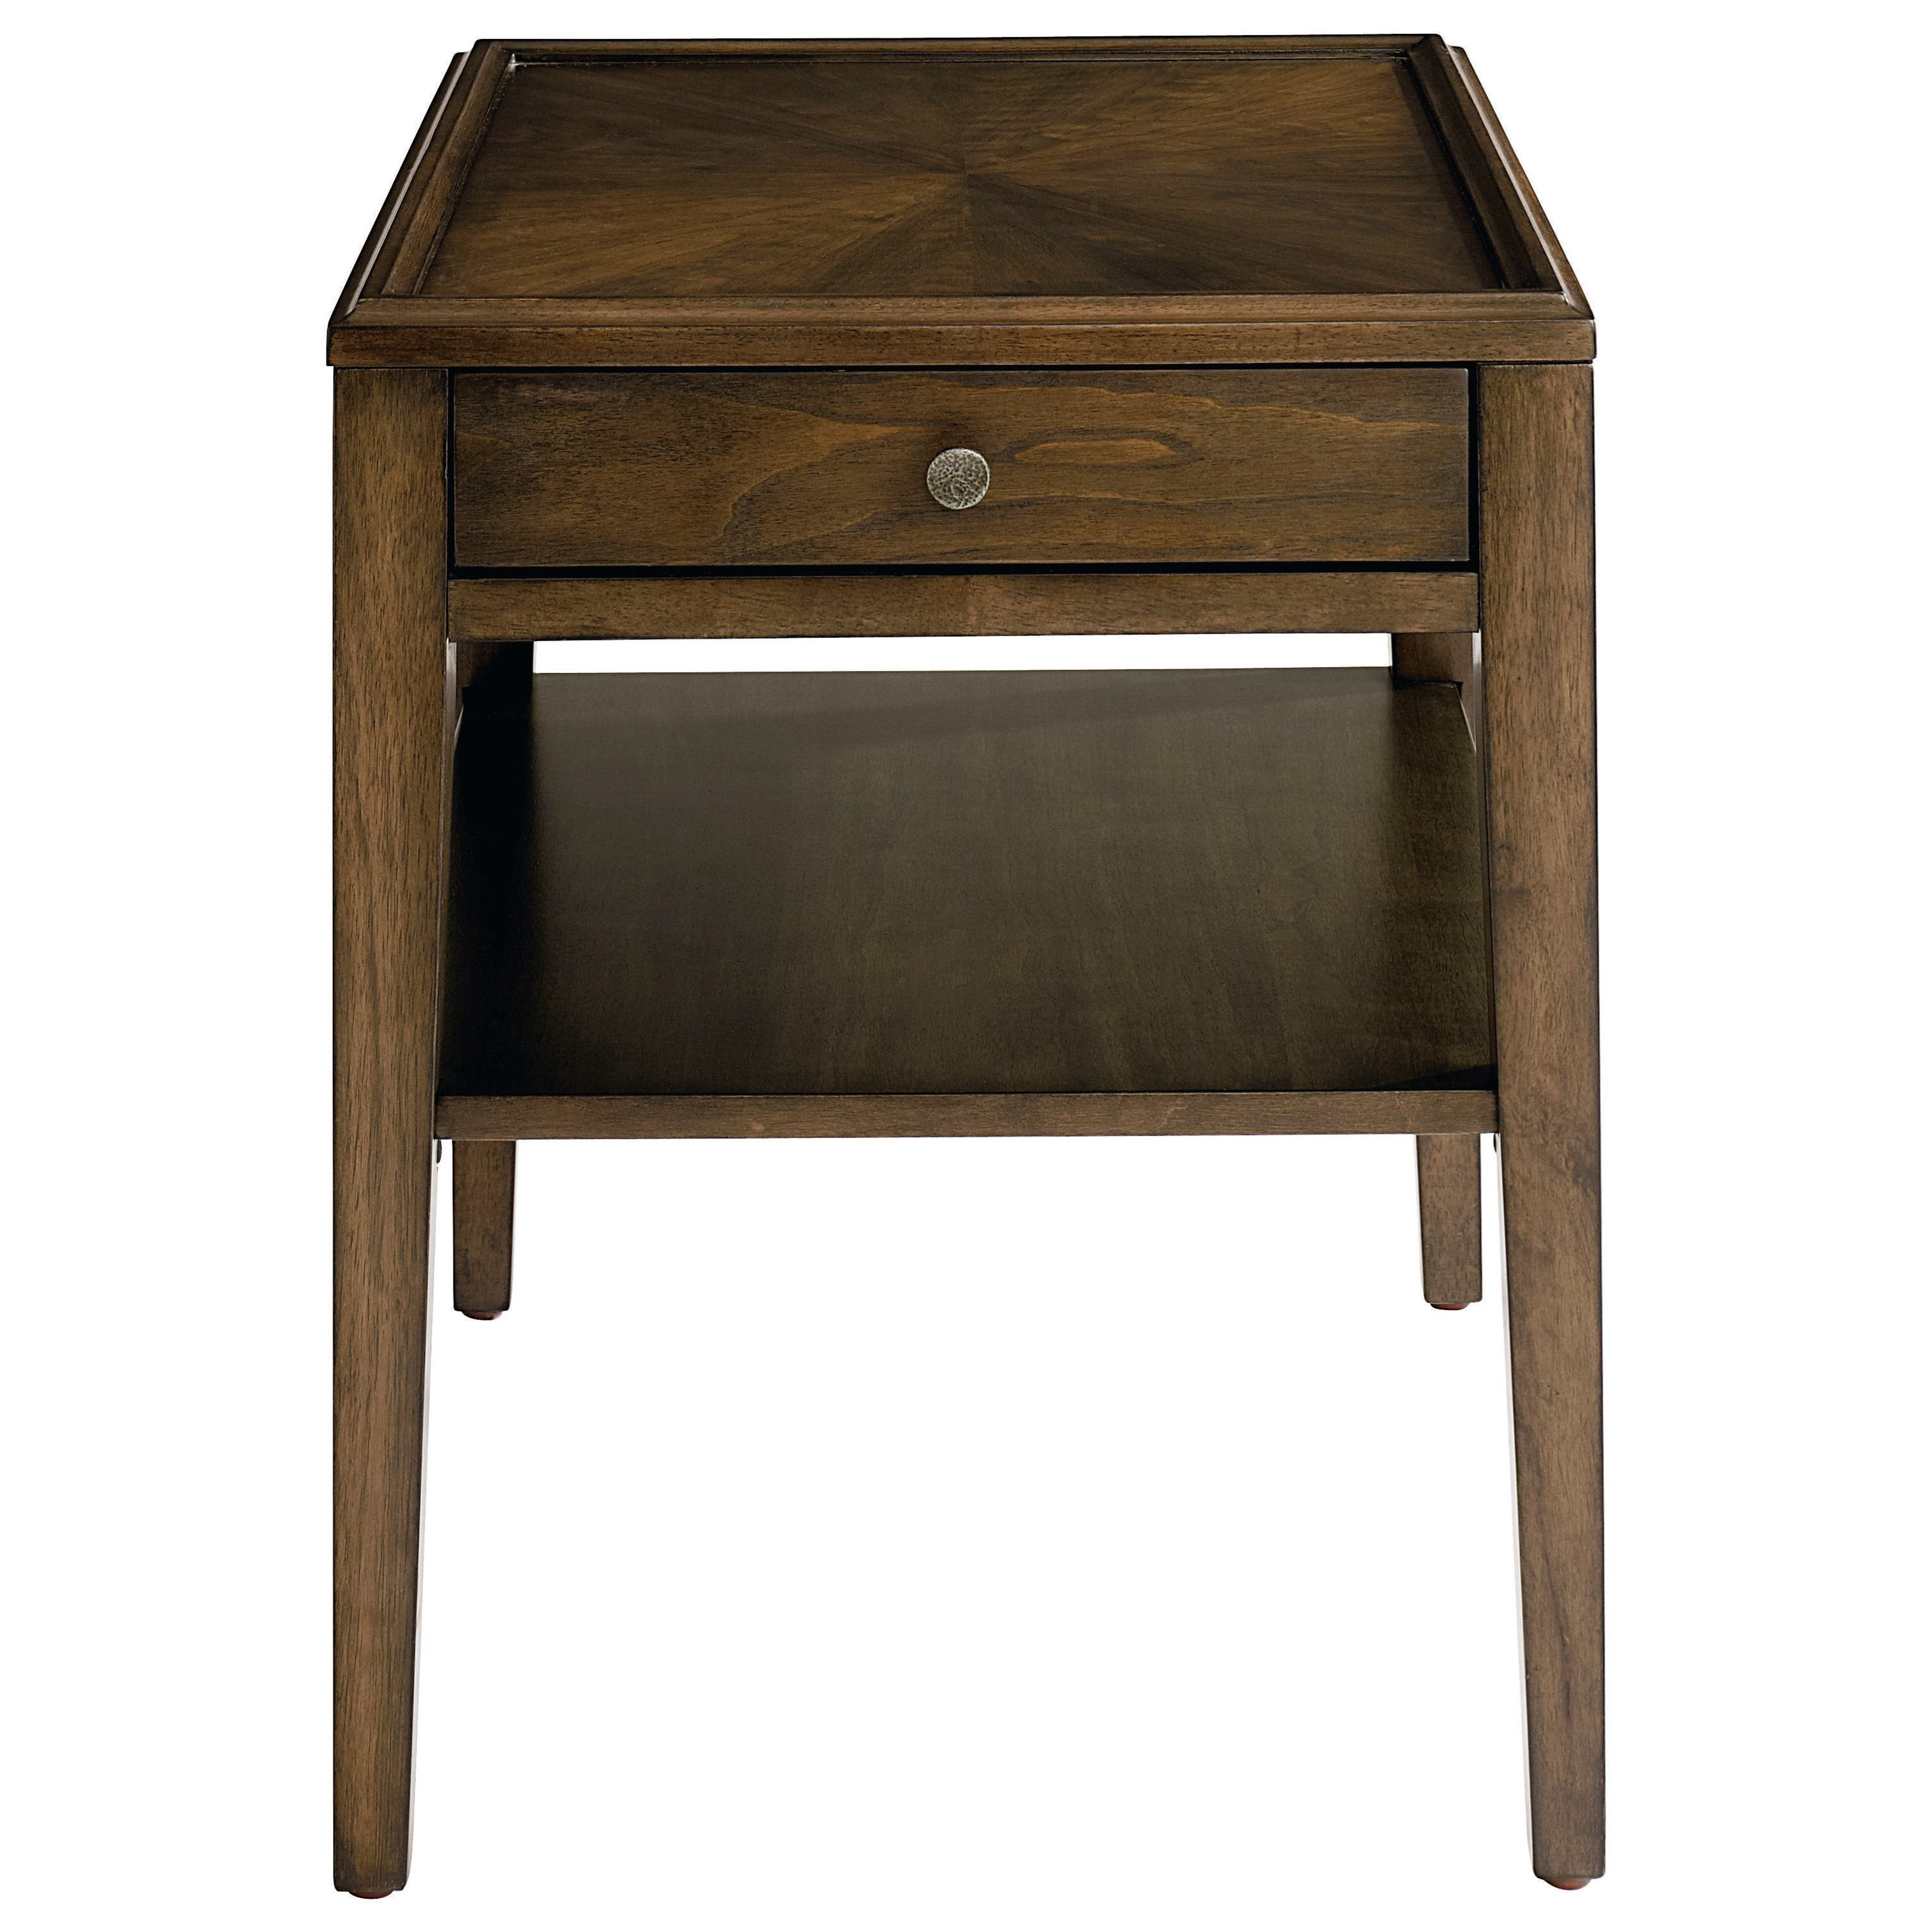 Palisades End Table by Bassett at VanDrie Home Furnishings